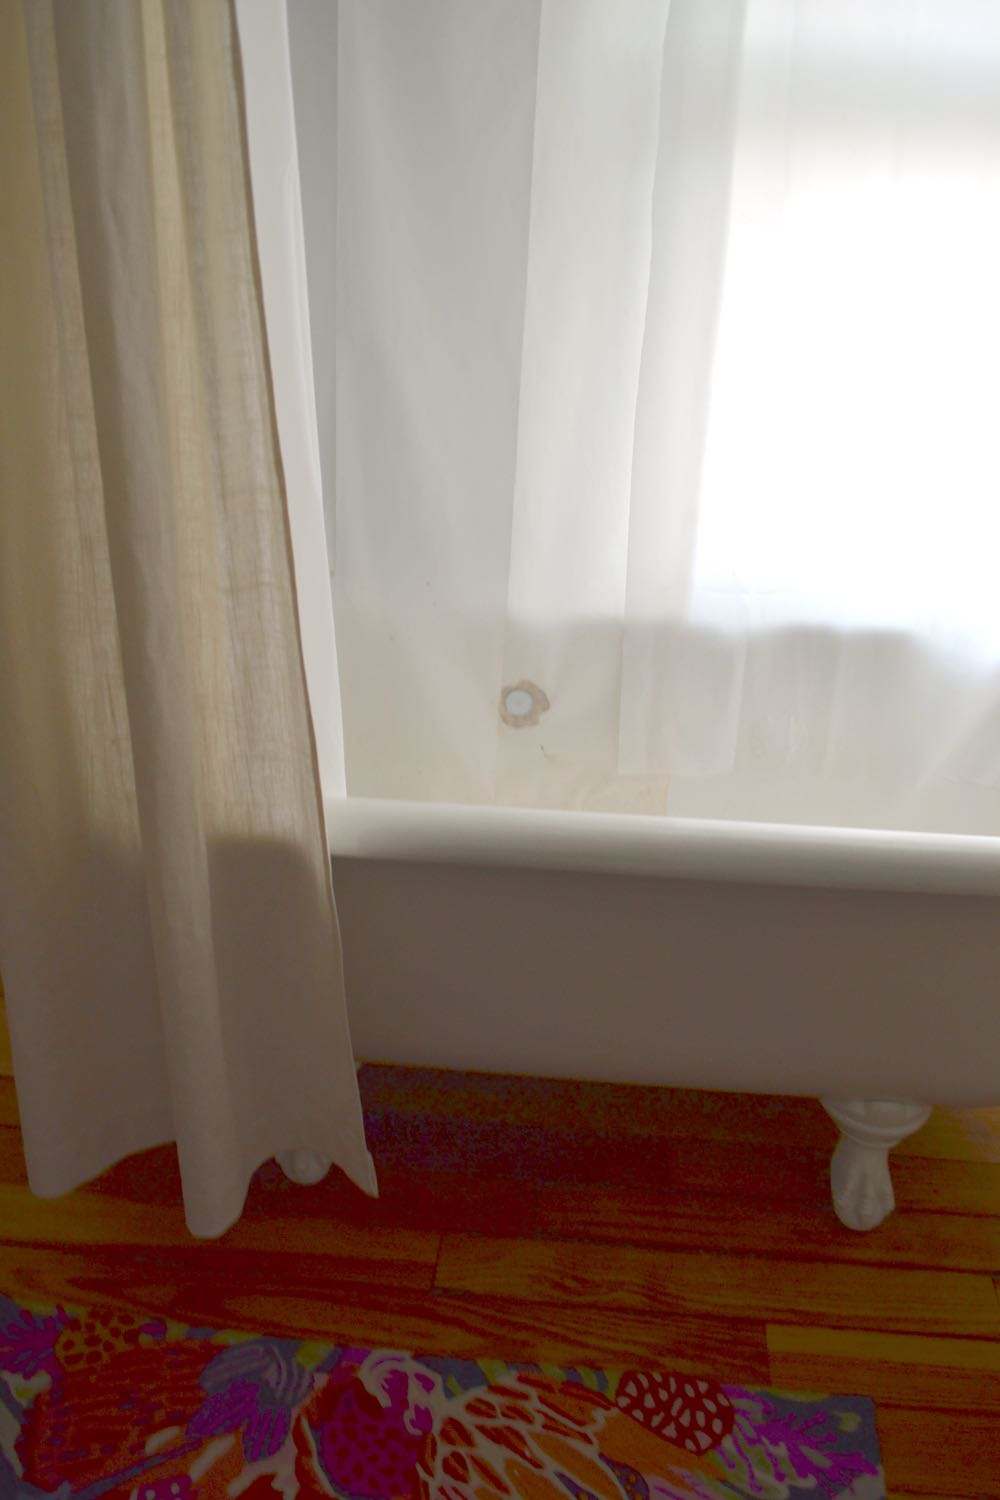 Shower curtain liner clawfoot tub5 jpg Update  Clawfoot Tub Curtain Liner Idea The White Apartment